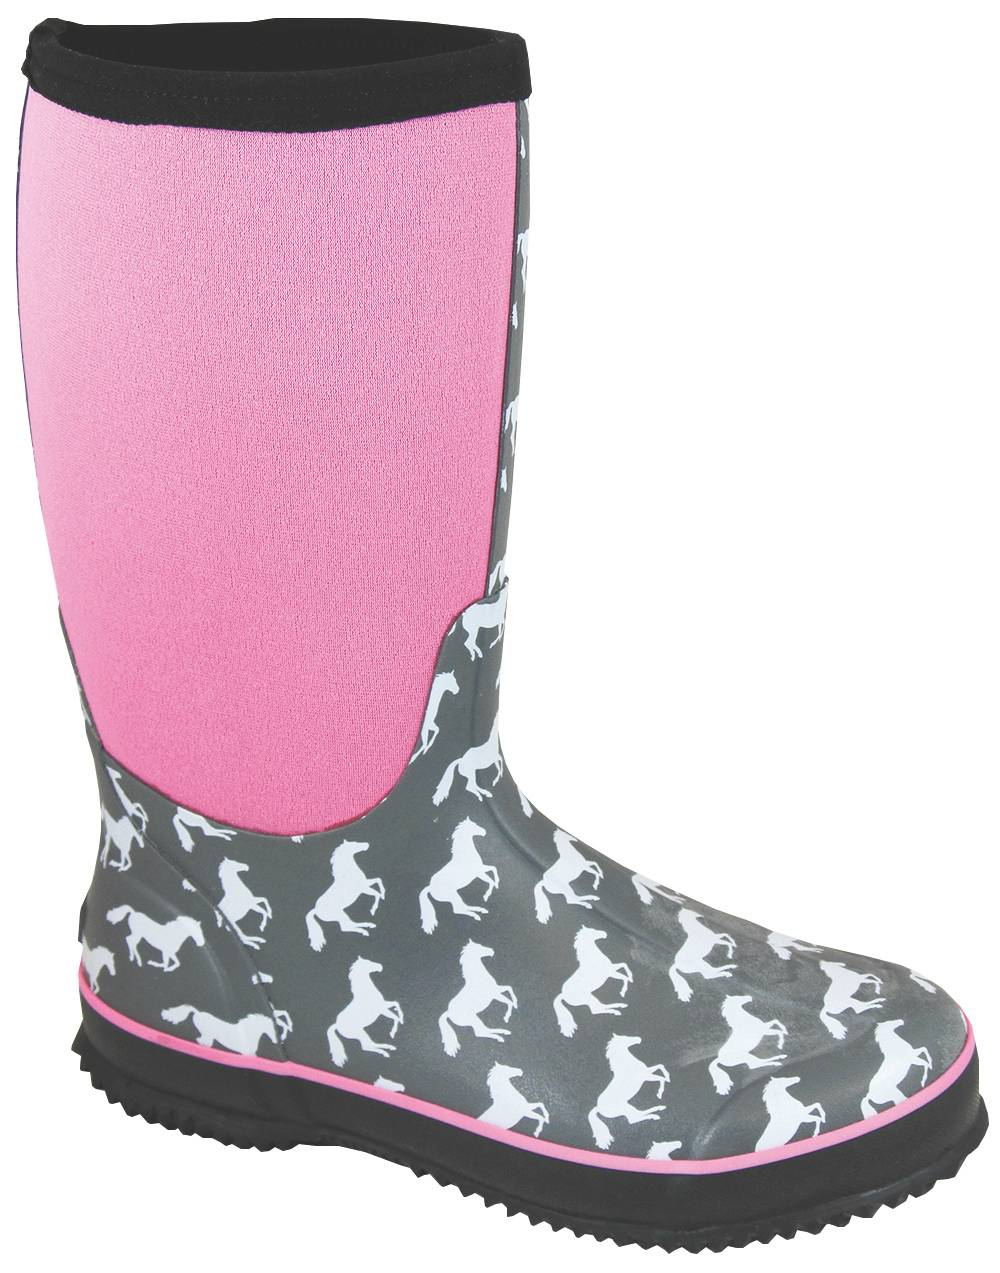 Smoky Mountain Womens Horses Amphibian Boots - Gray/Pink